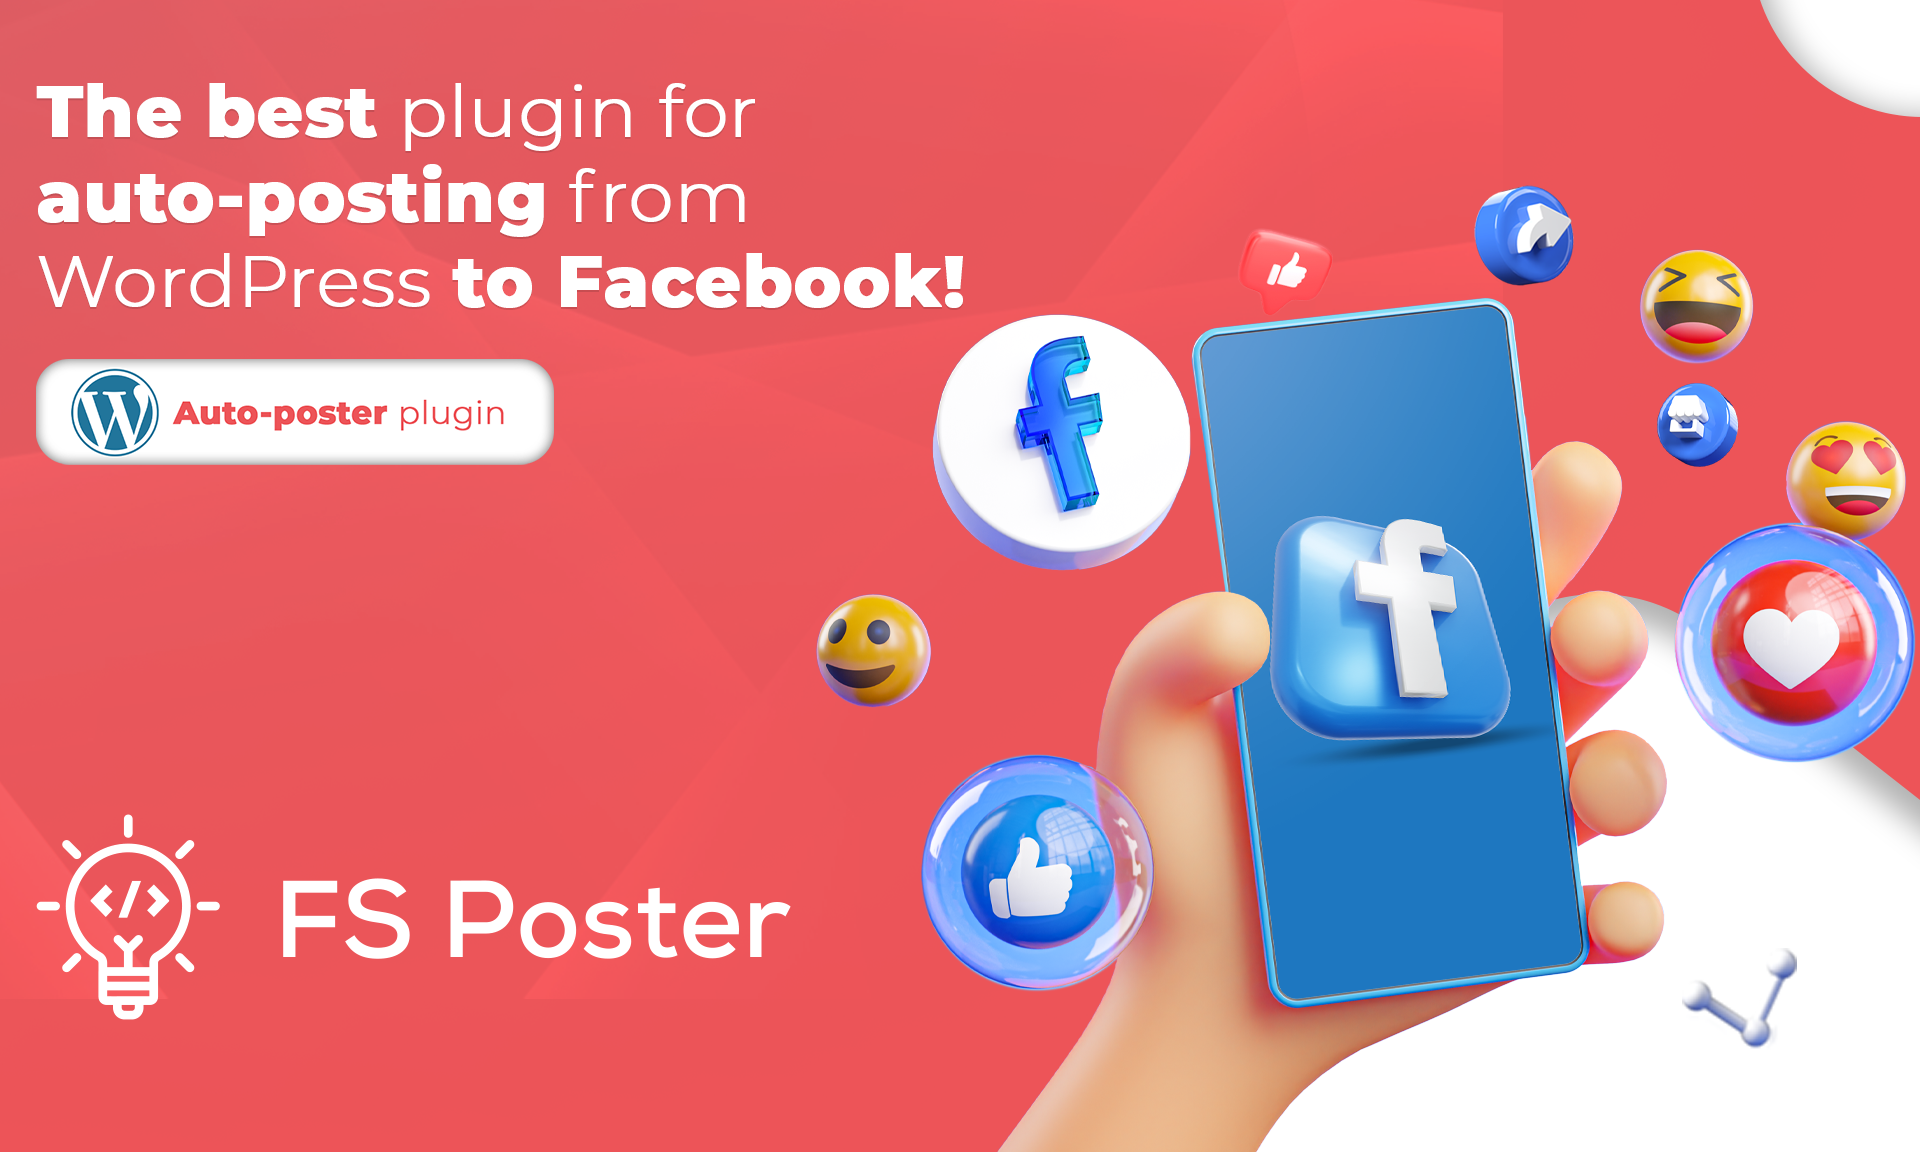 The best plugin for auto-posting from WordPress to Facebook